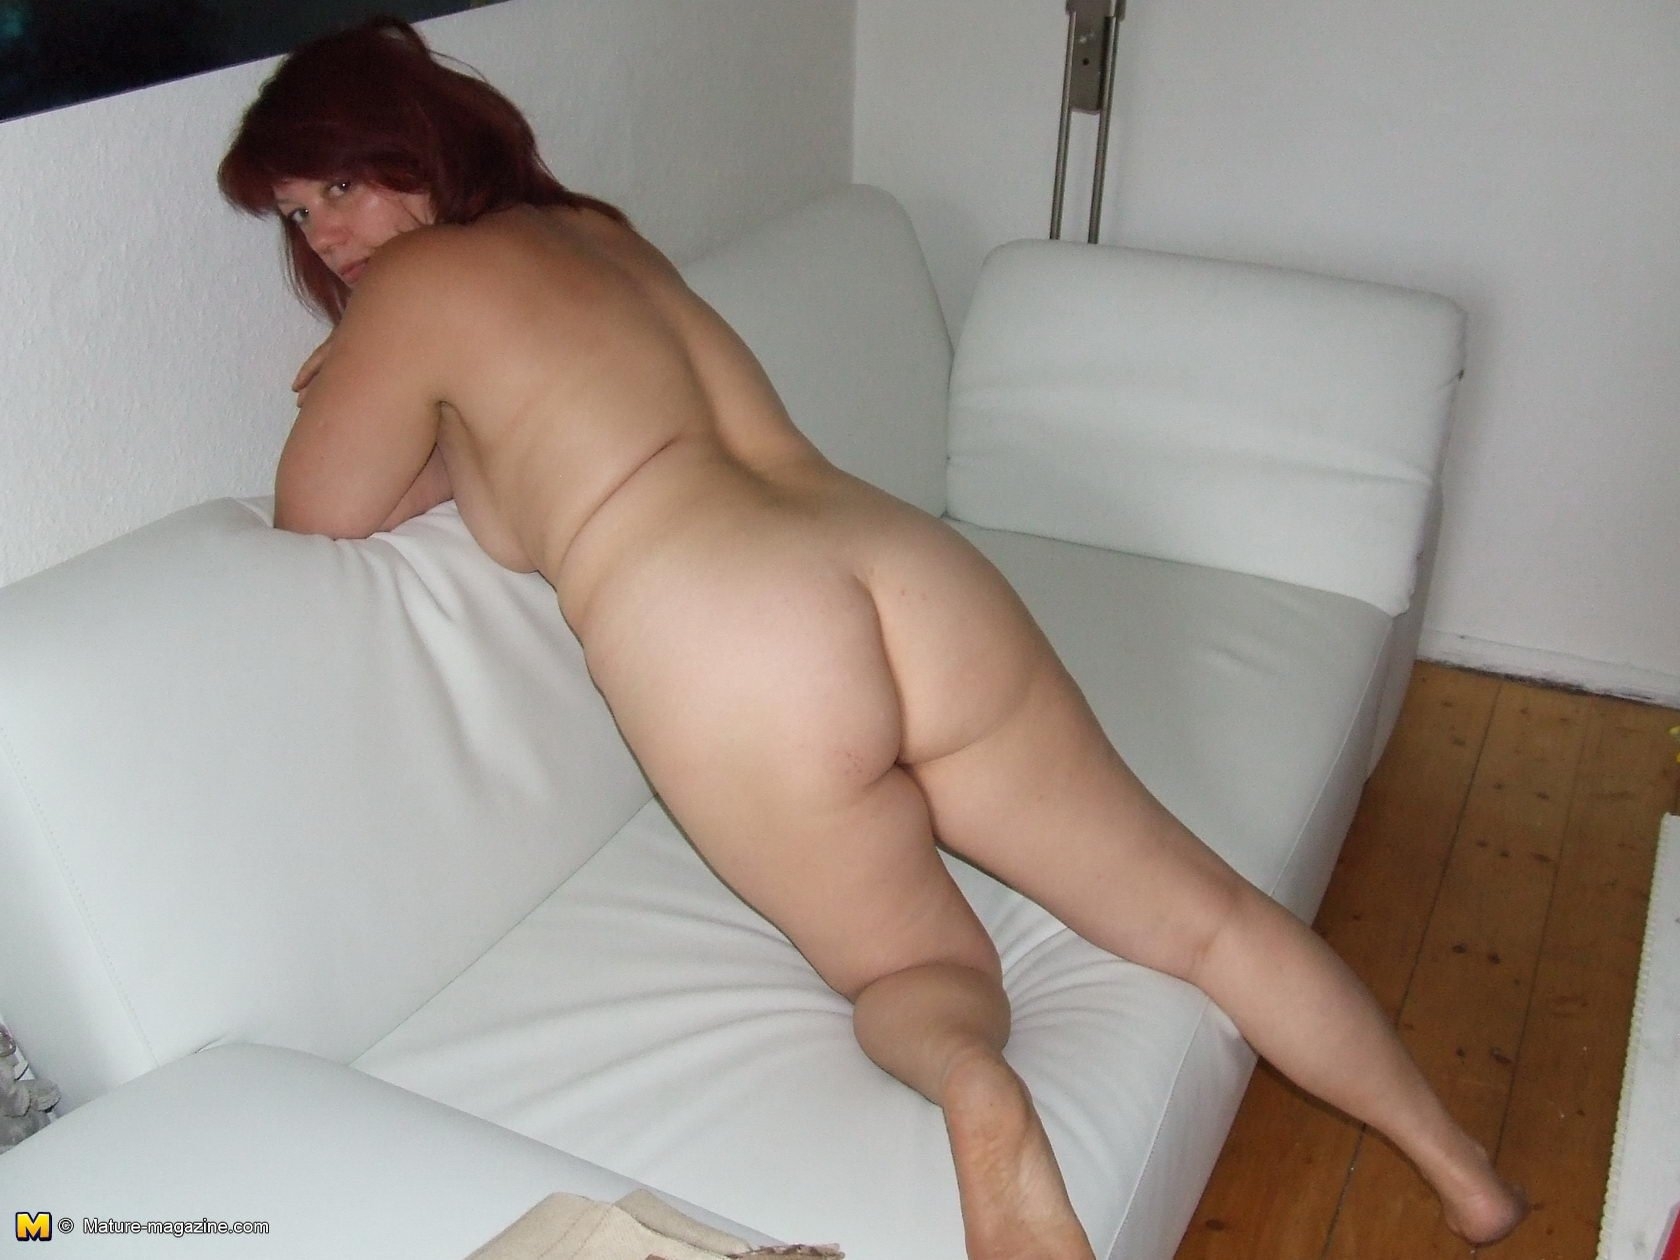 Naked amateur mature pictures #1